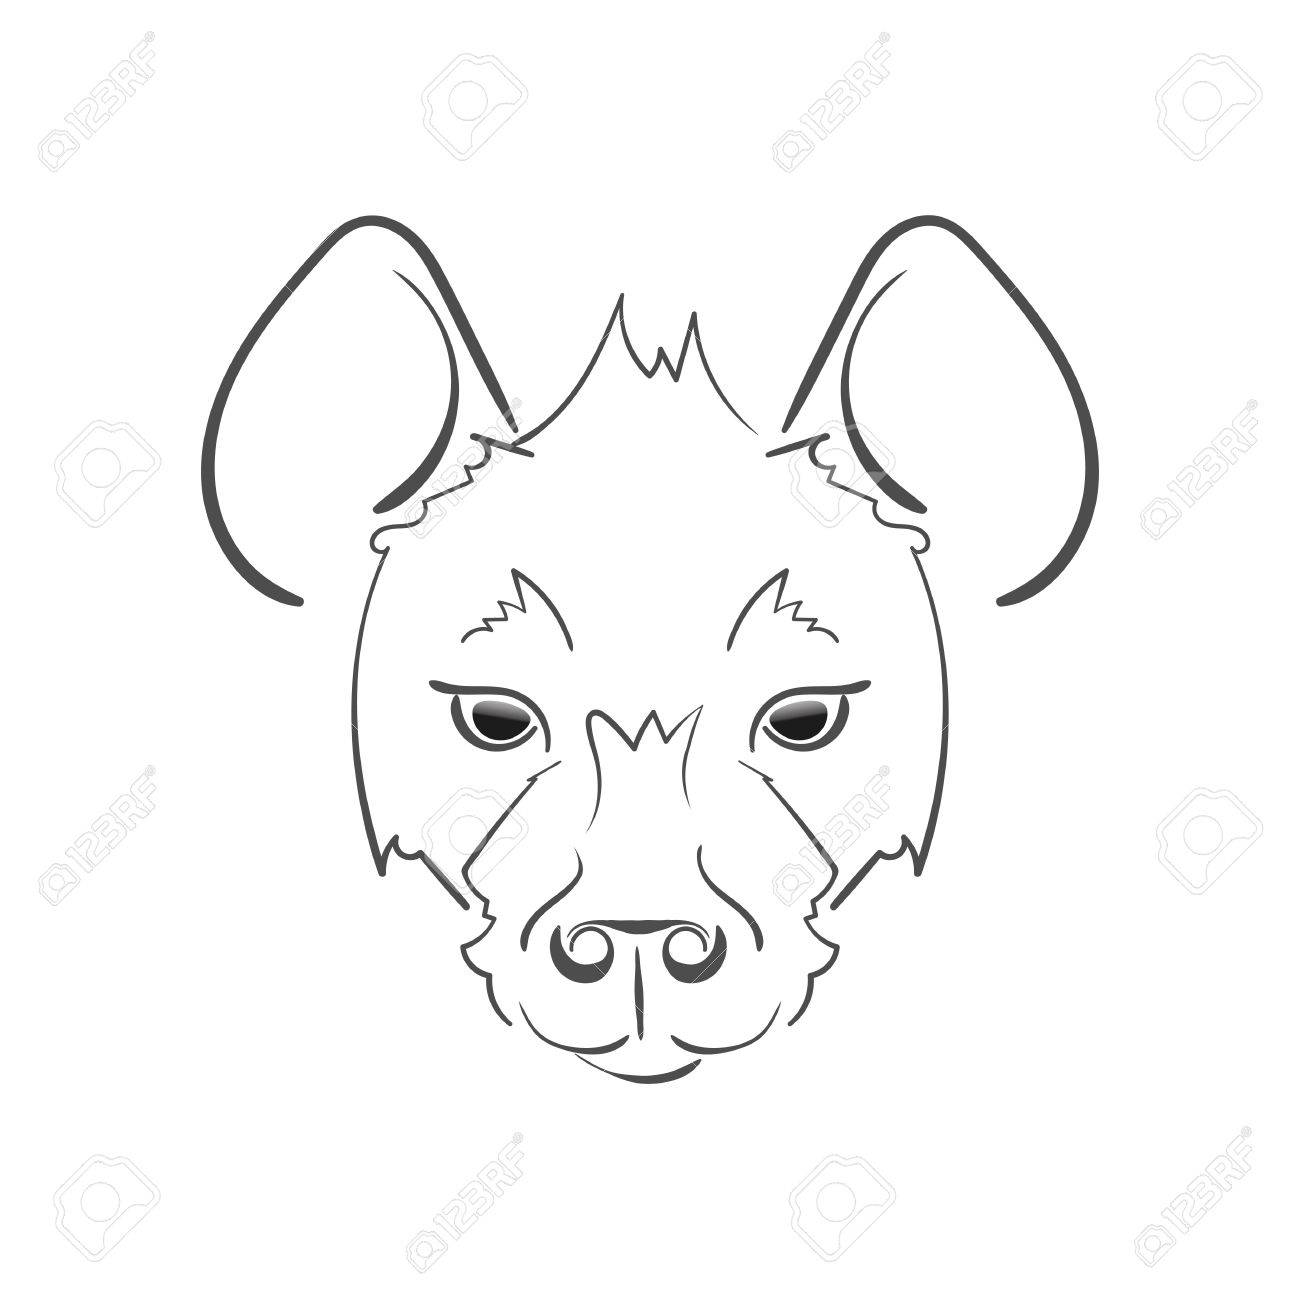 1300x1300 Stylized Muzzle Hyena Black And White Sketch. For Use As Logos